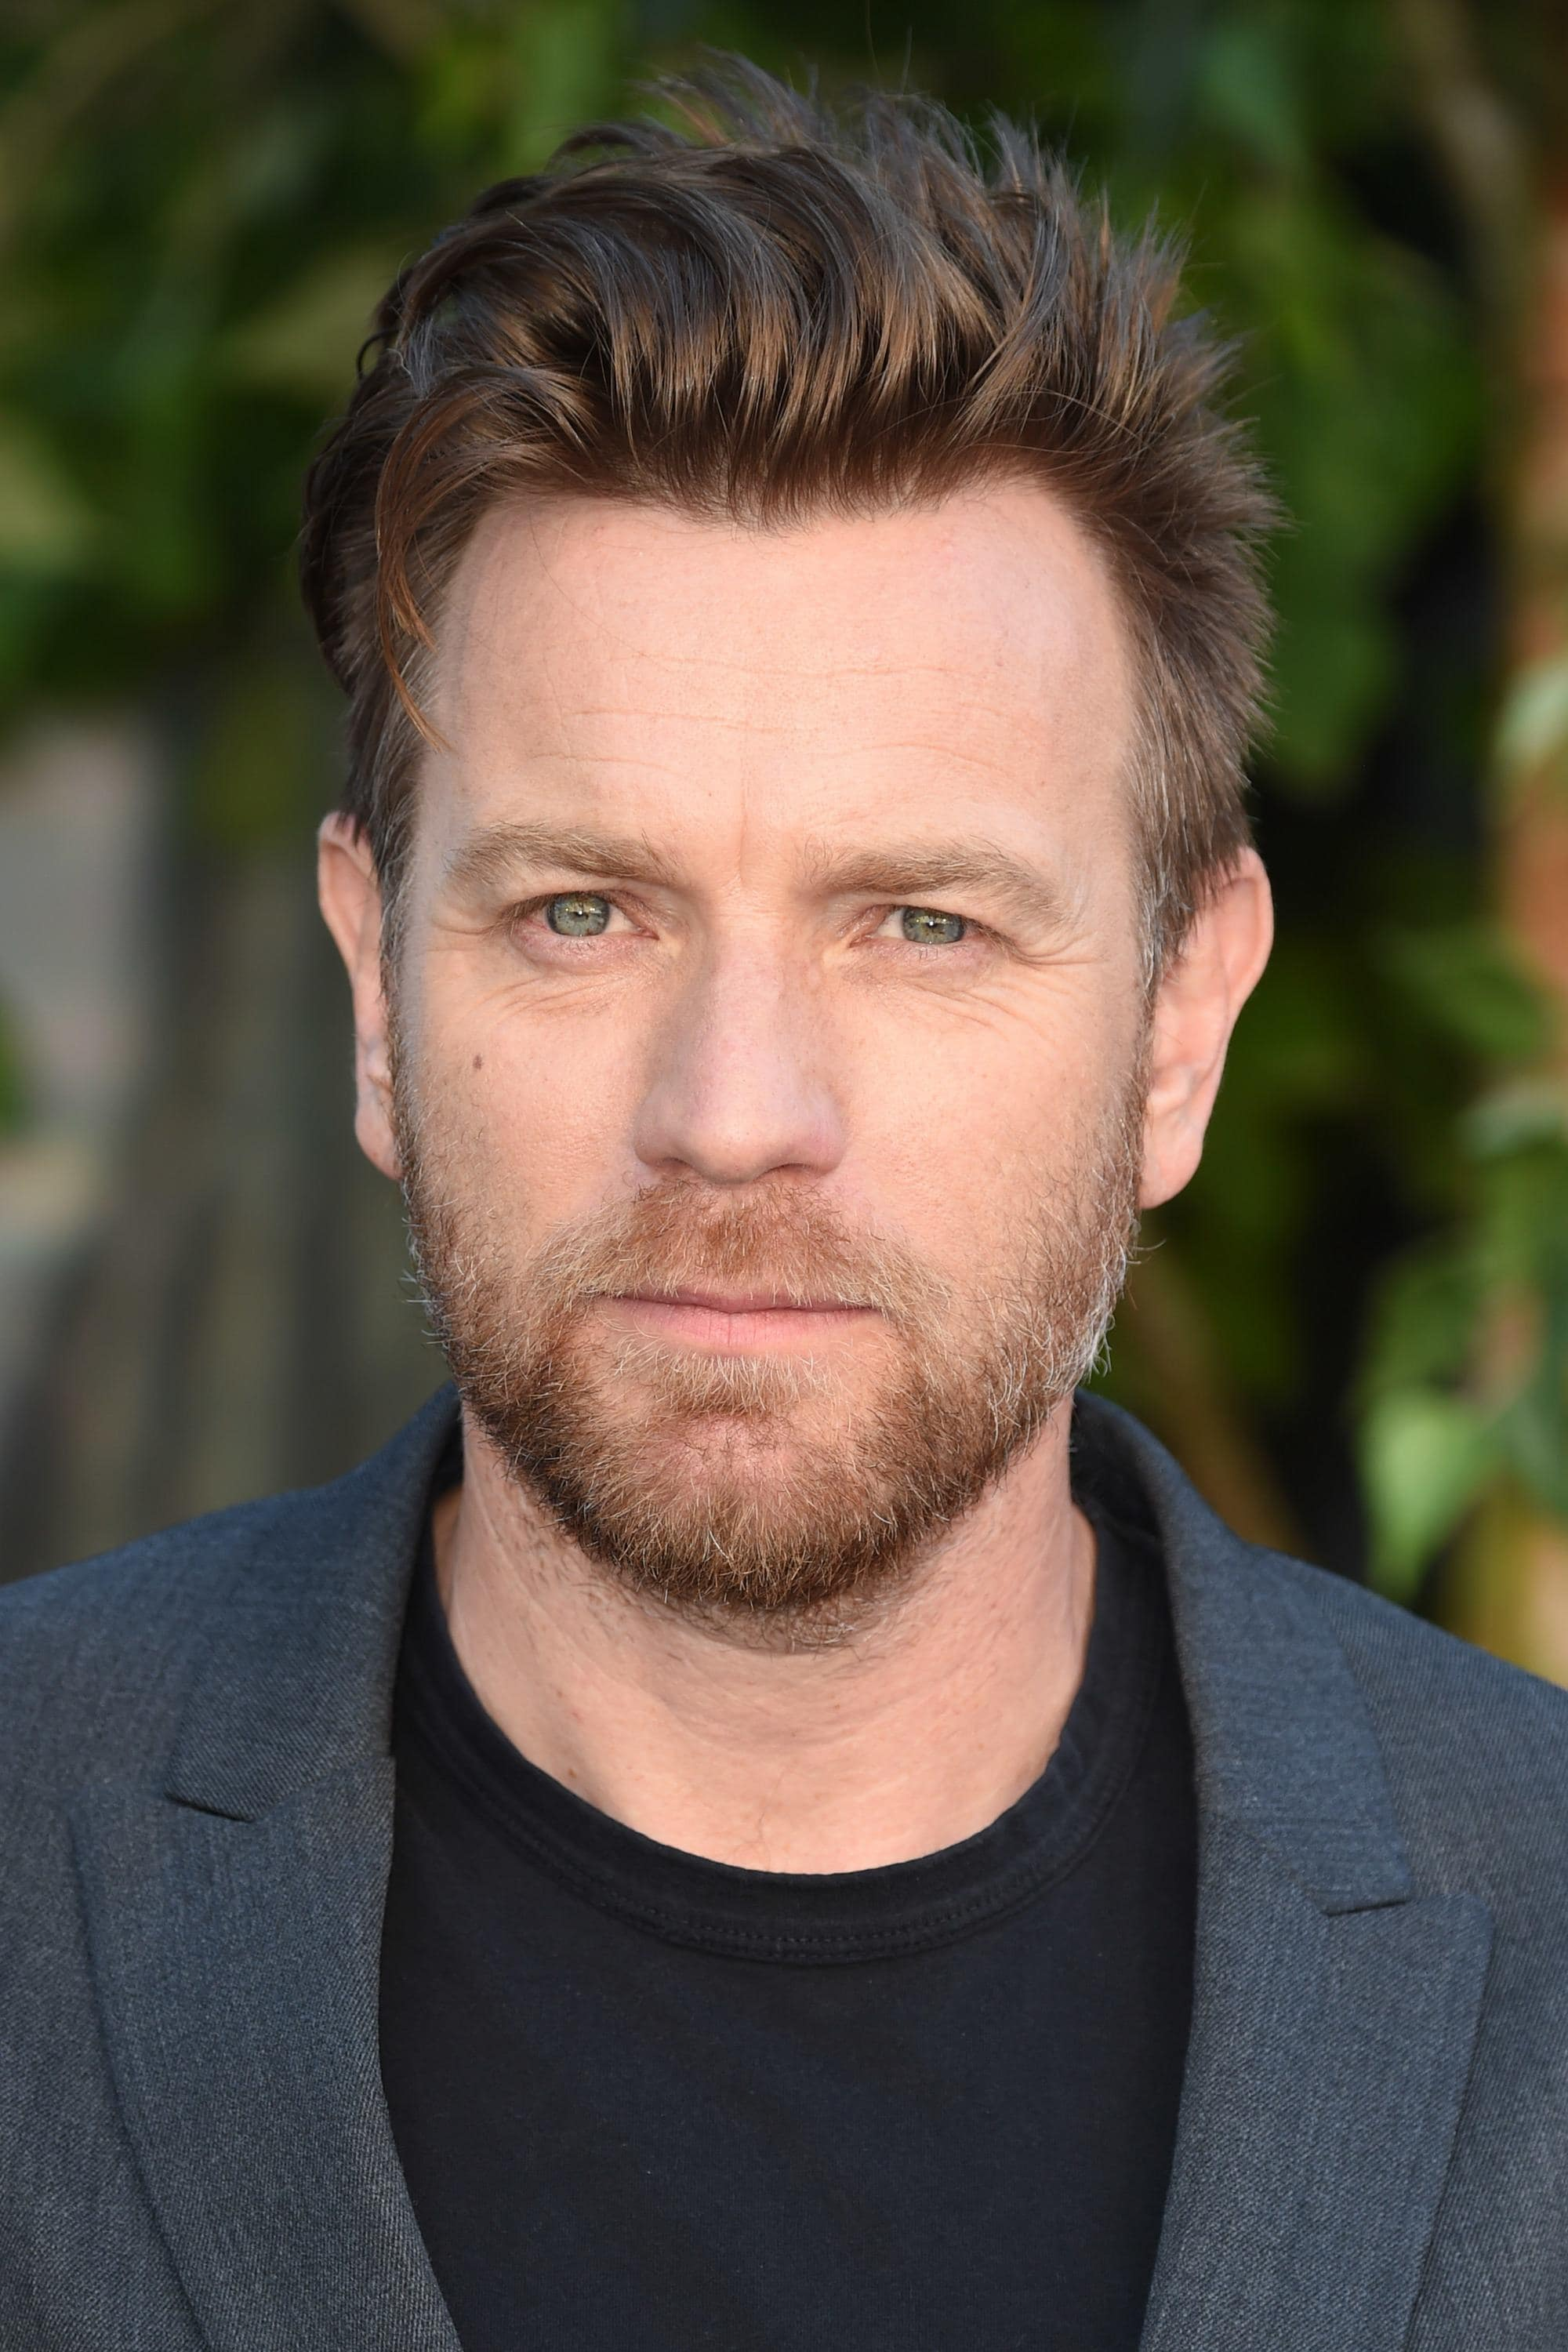 Hairstyles for receding hairline: Close-up headshot of Ewan McGregor with brown hair in a soft pomp style